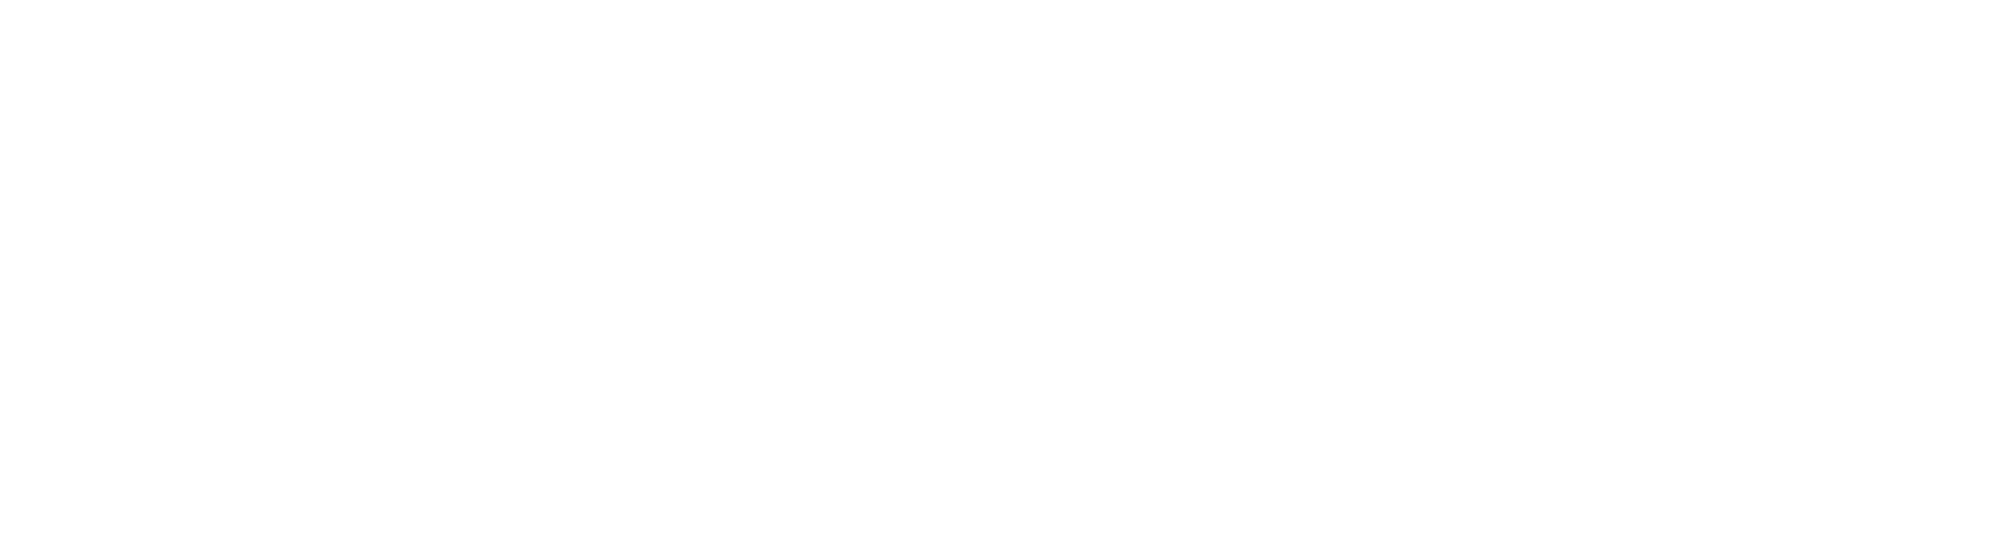 International Watercraft Registry